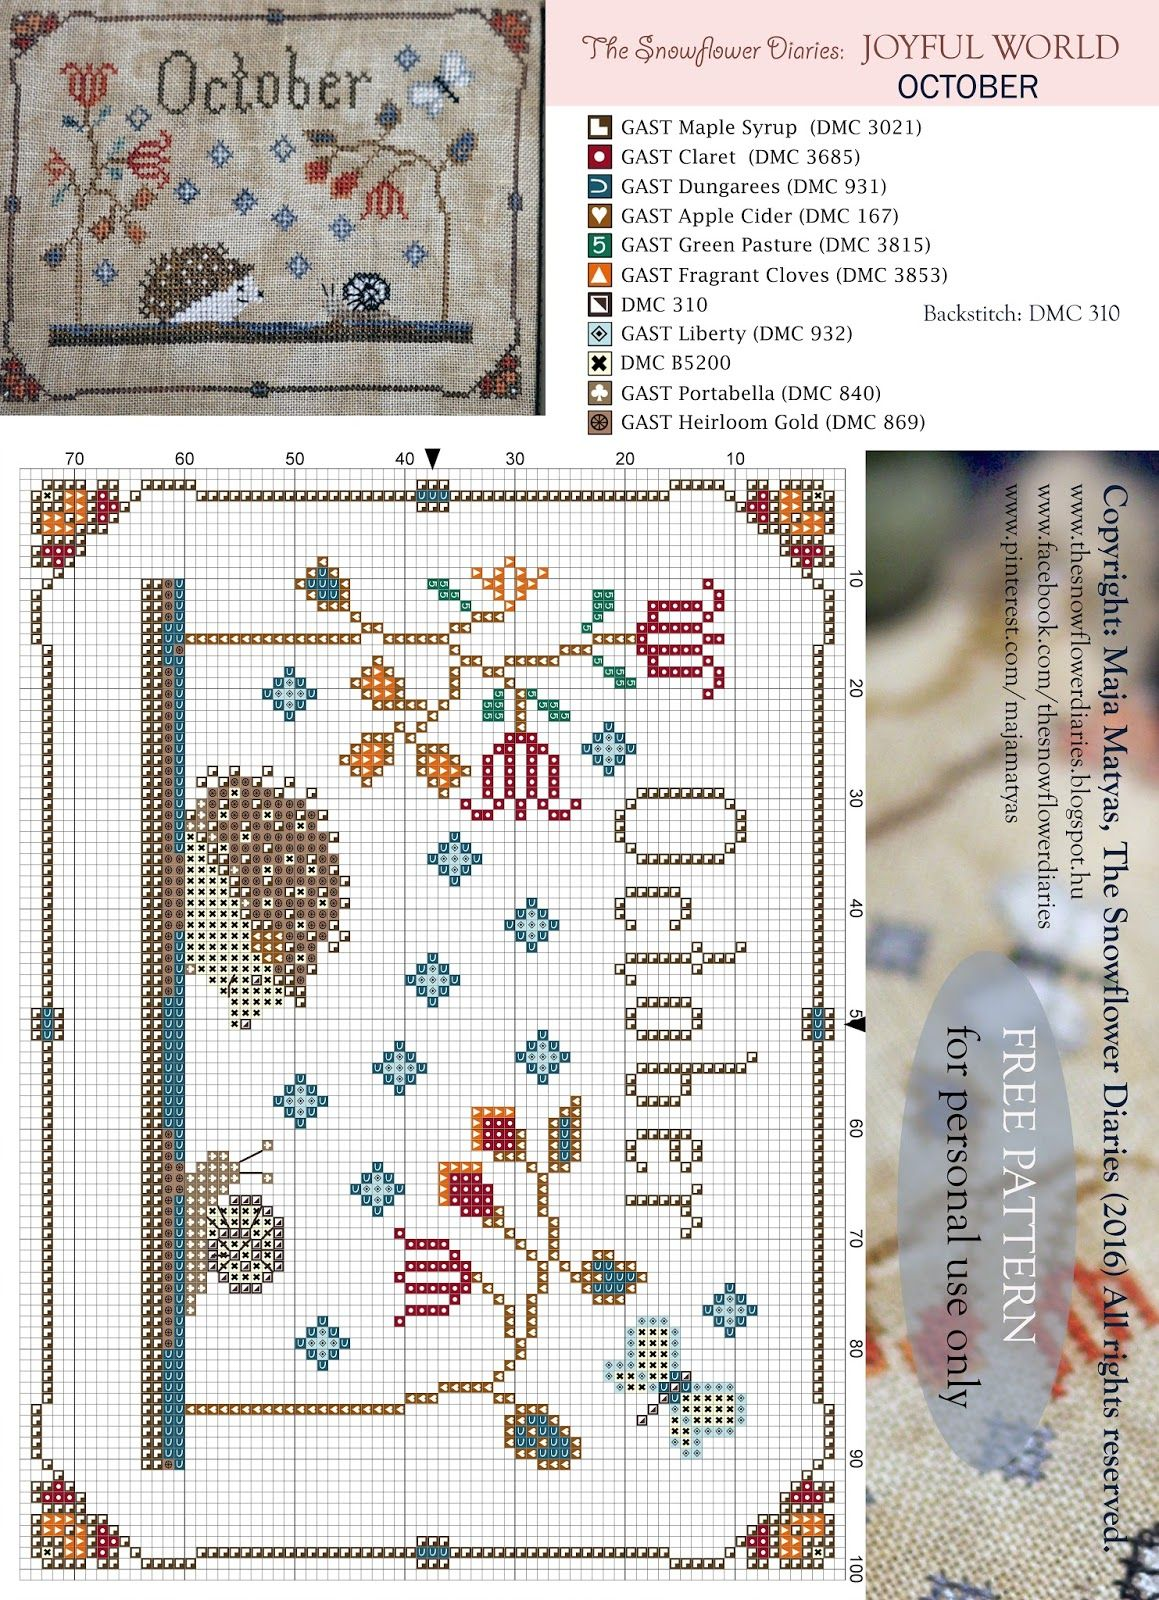 Creative blog about designing in the needlework industry ...